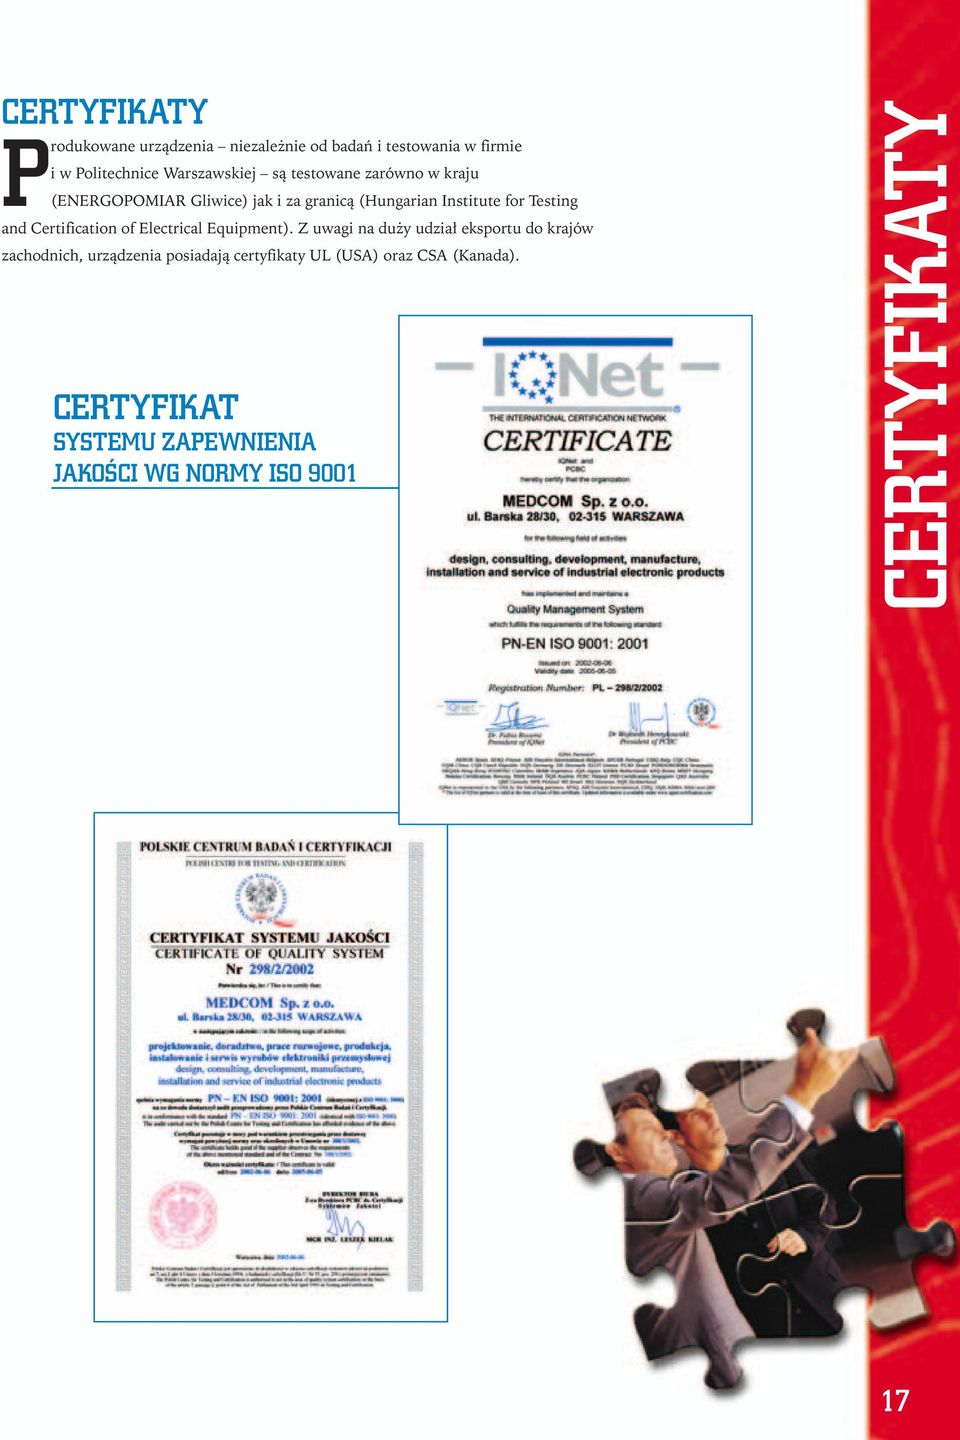 Certificatin f Electrical Equipment).